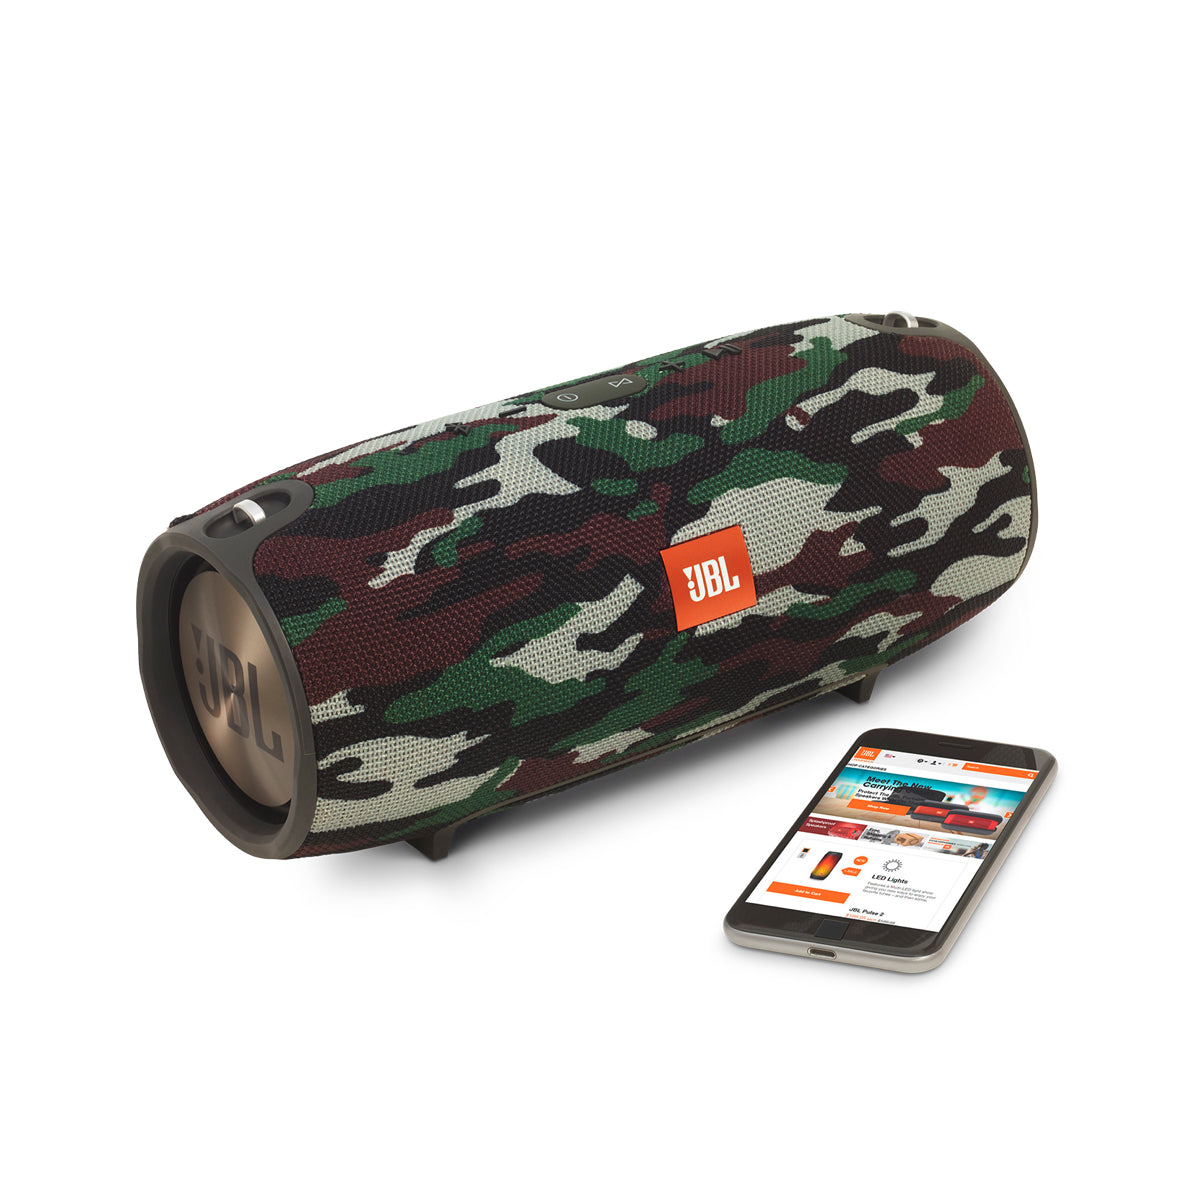 JBL Xtreme Special Edition (Splashproof Bluetooth Speaker), JBL, Bluetooth Wifi Speaker - AVStore.in